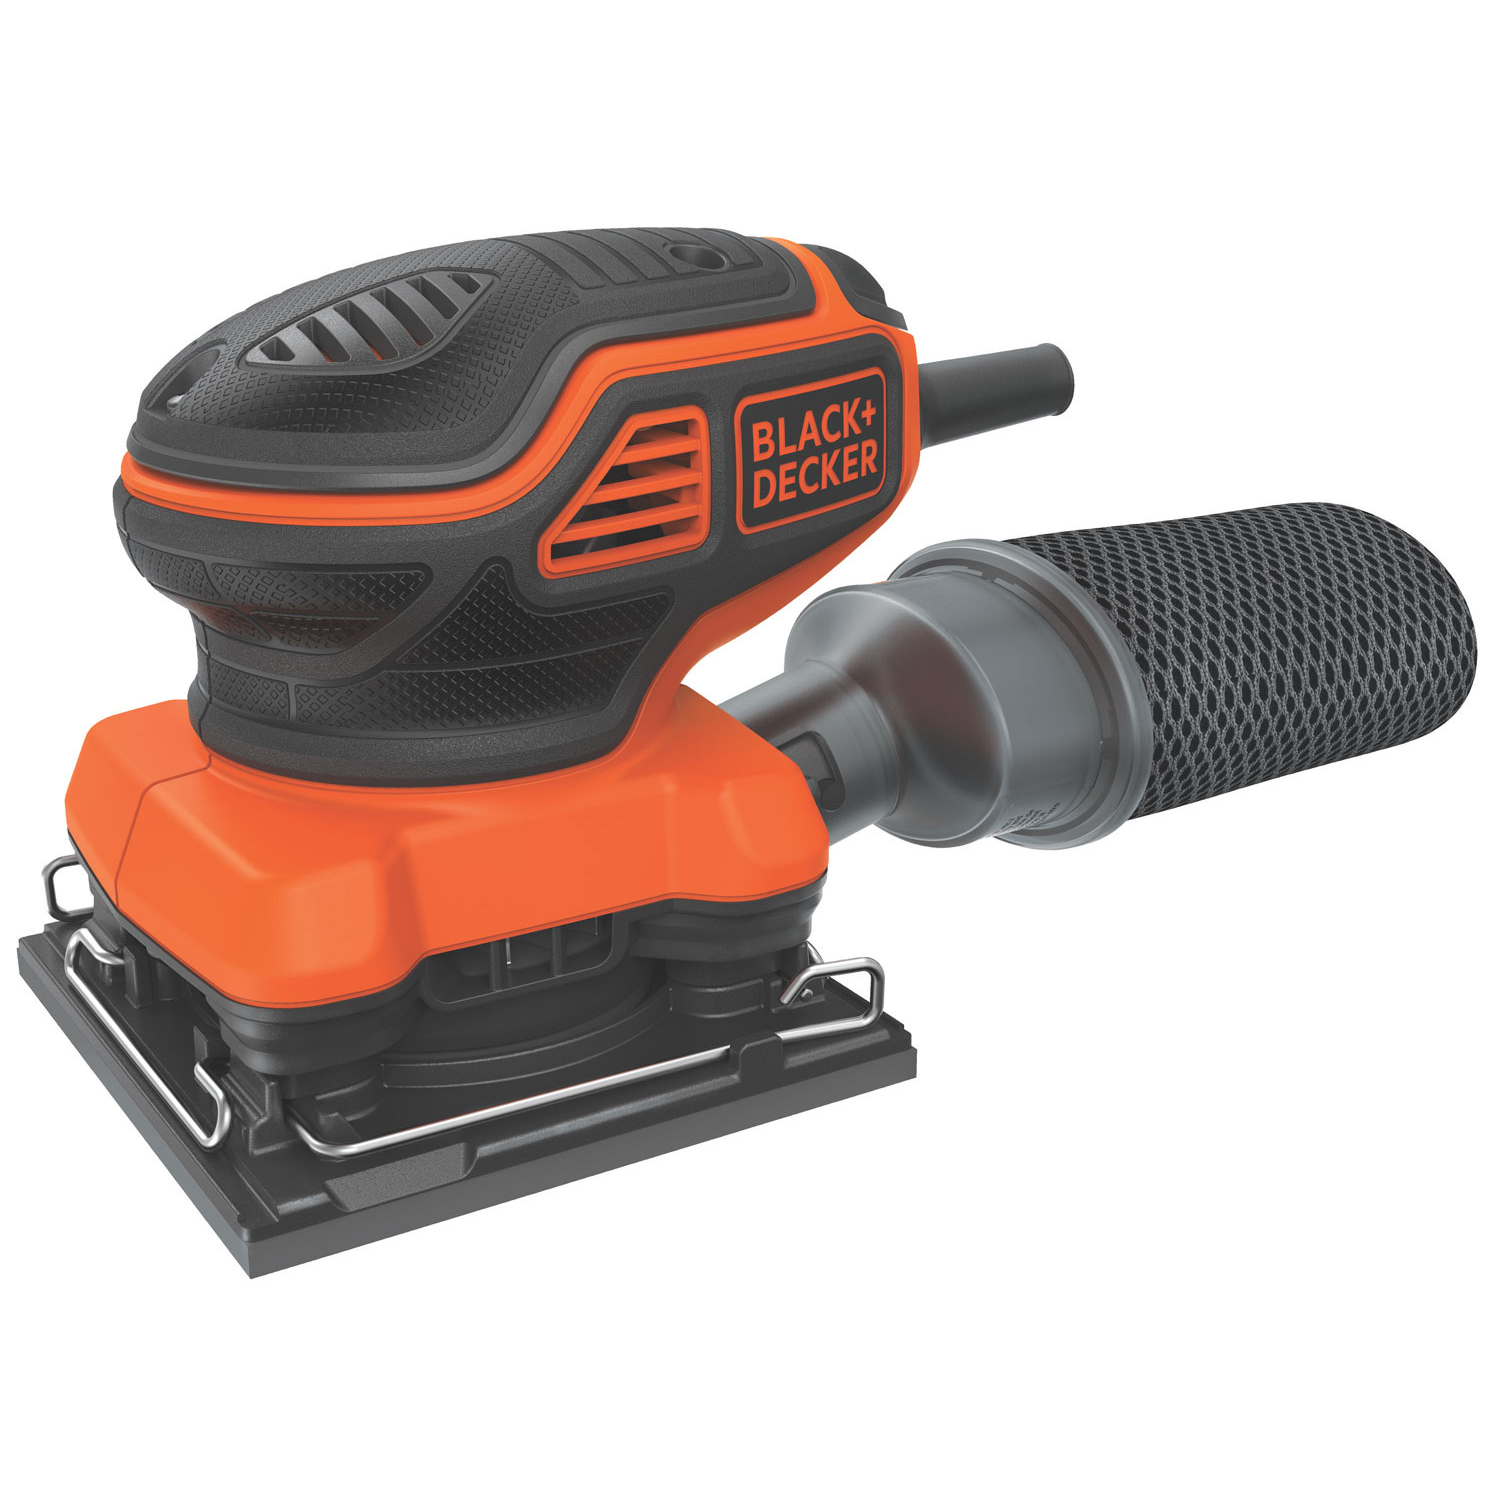 Black & Decker Power Tools BDEQS300 2 Amp 1/4 Sheet Orbital Sander